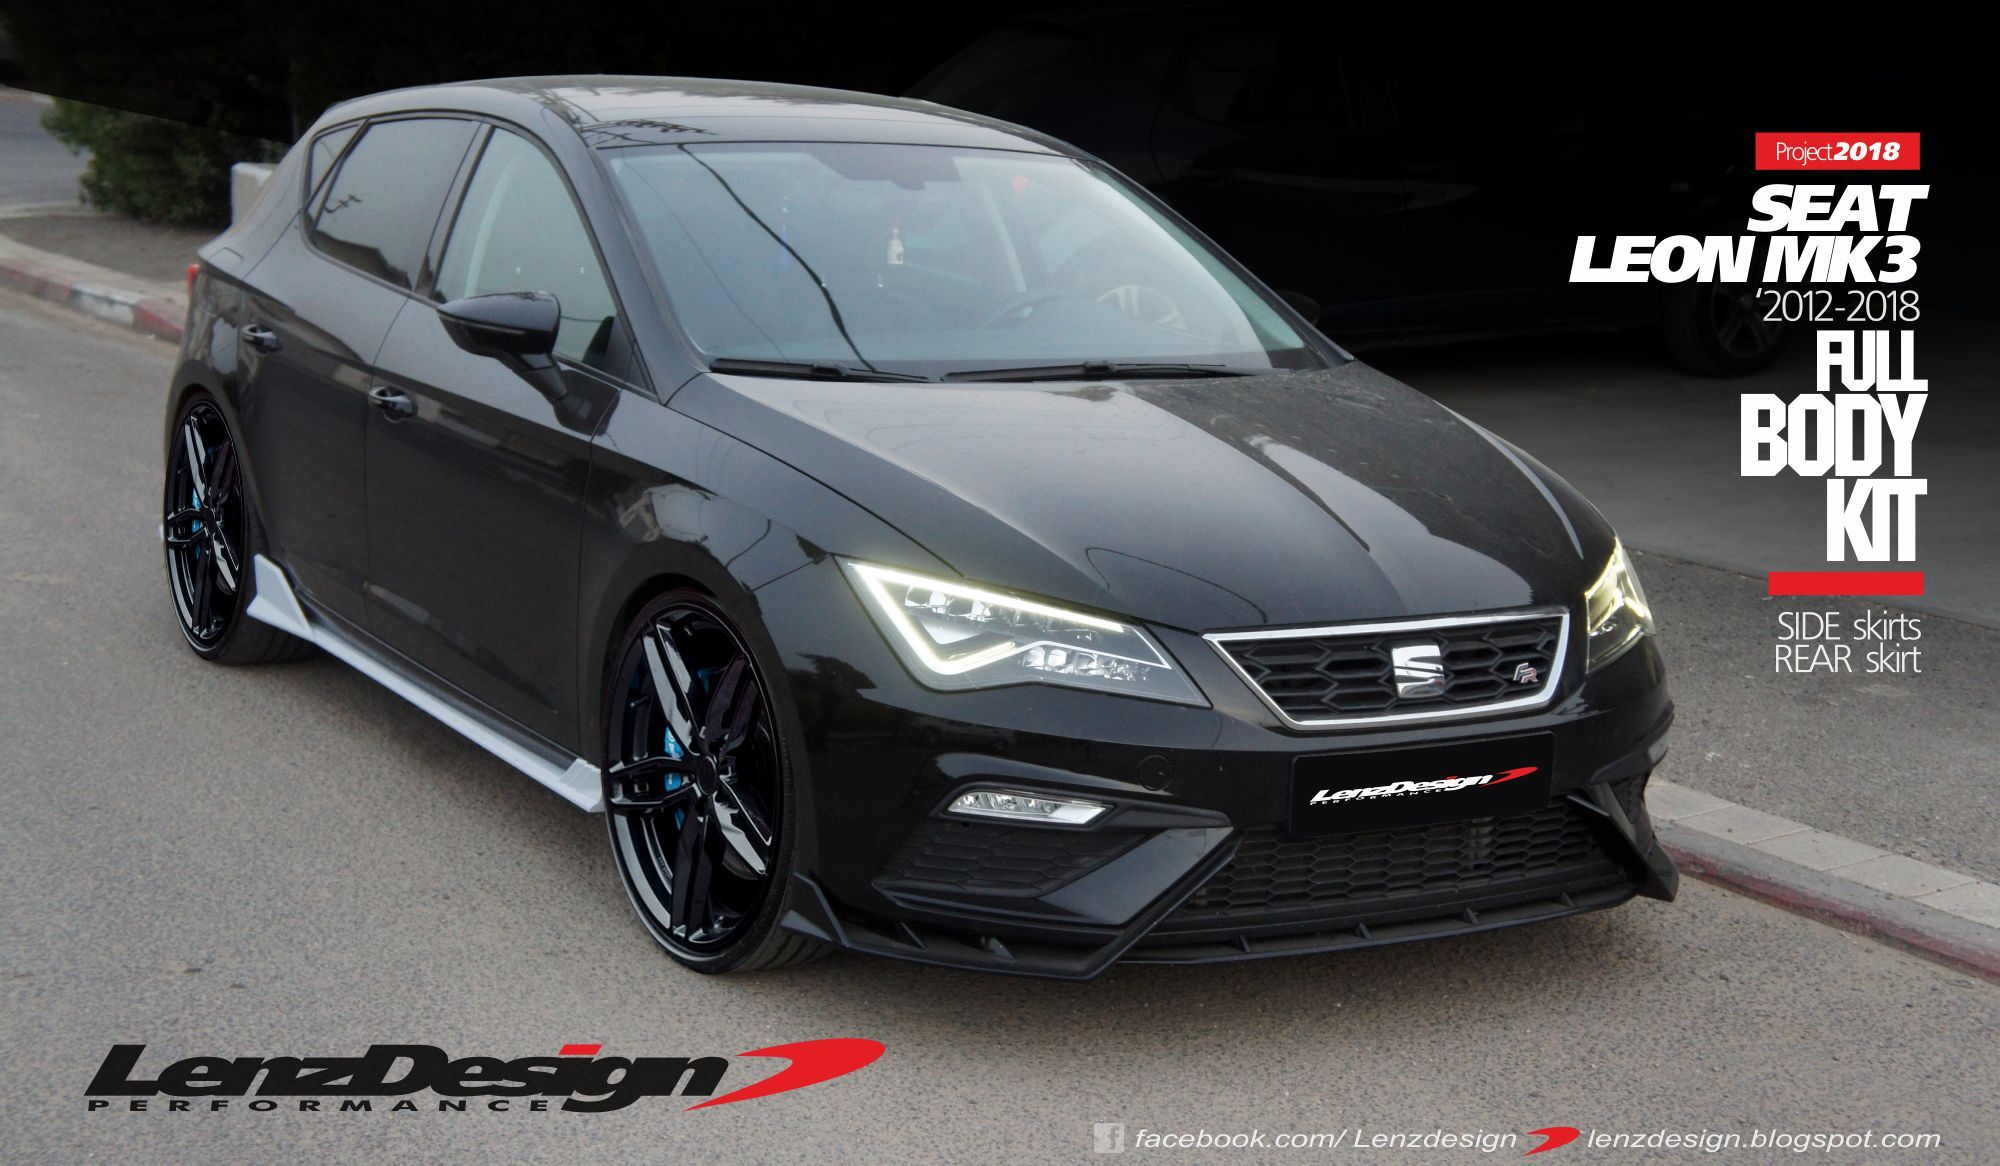 Pin By Michal Grell On Cars Seat Leon Seating Seat Cupra